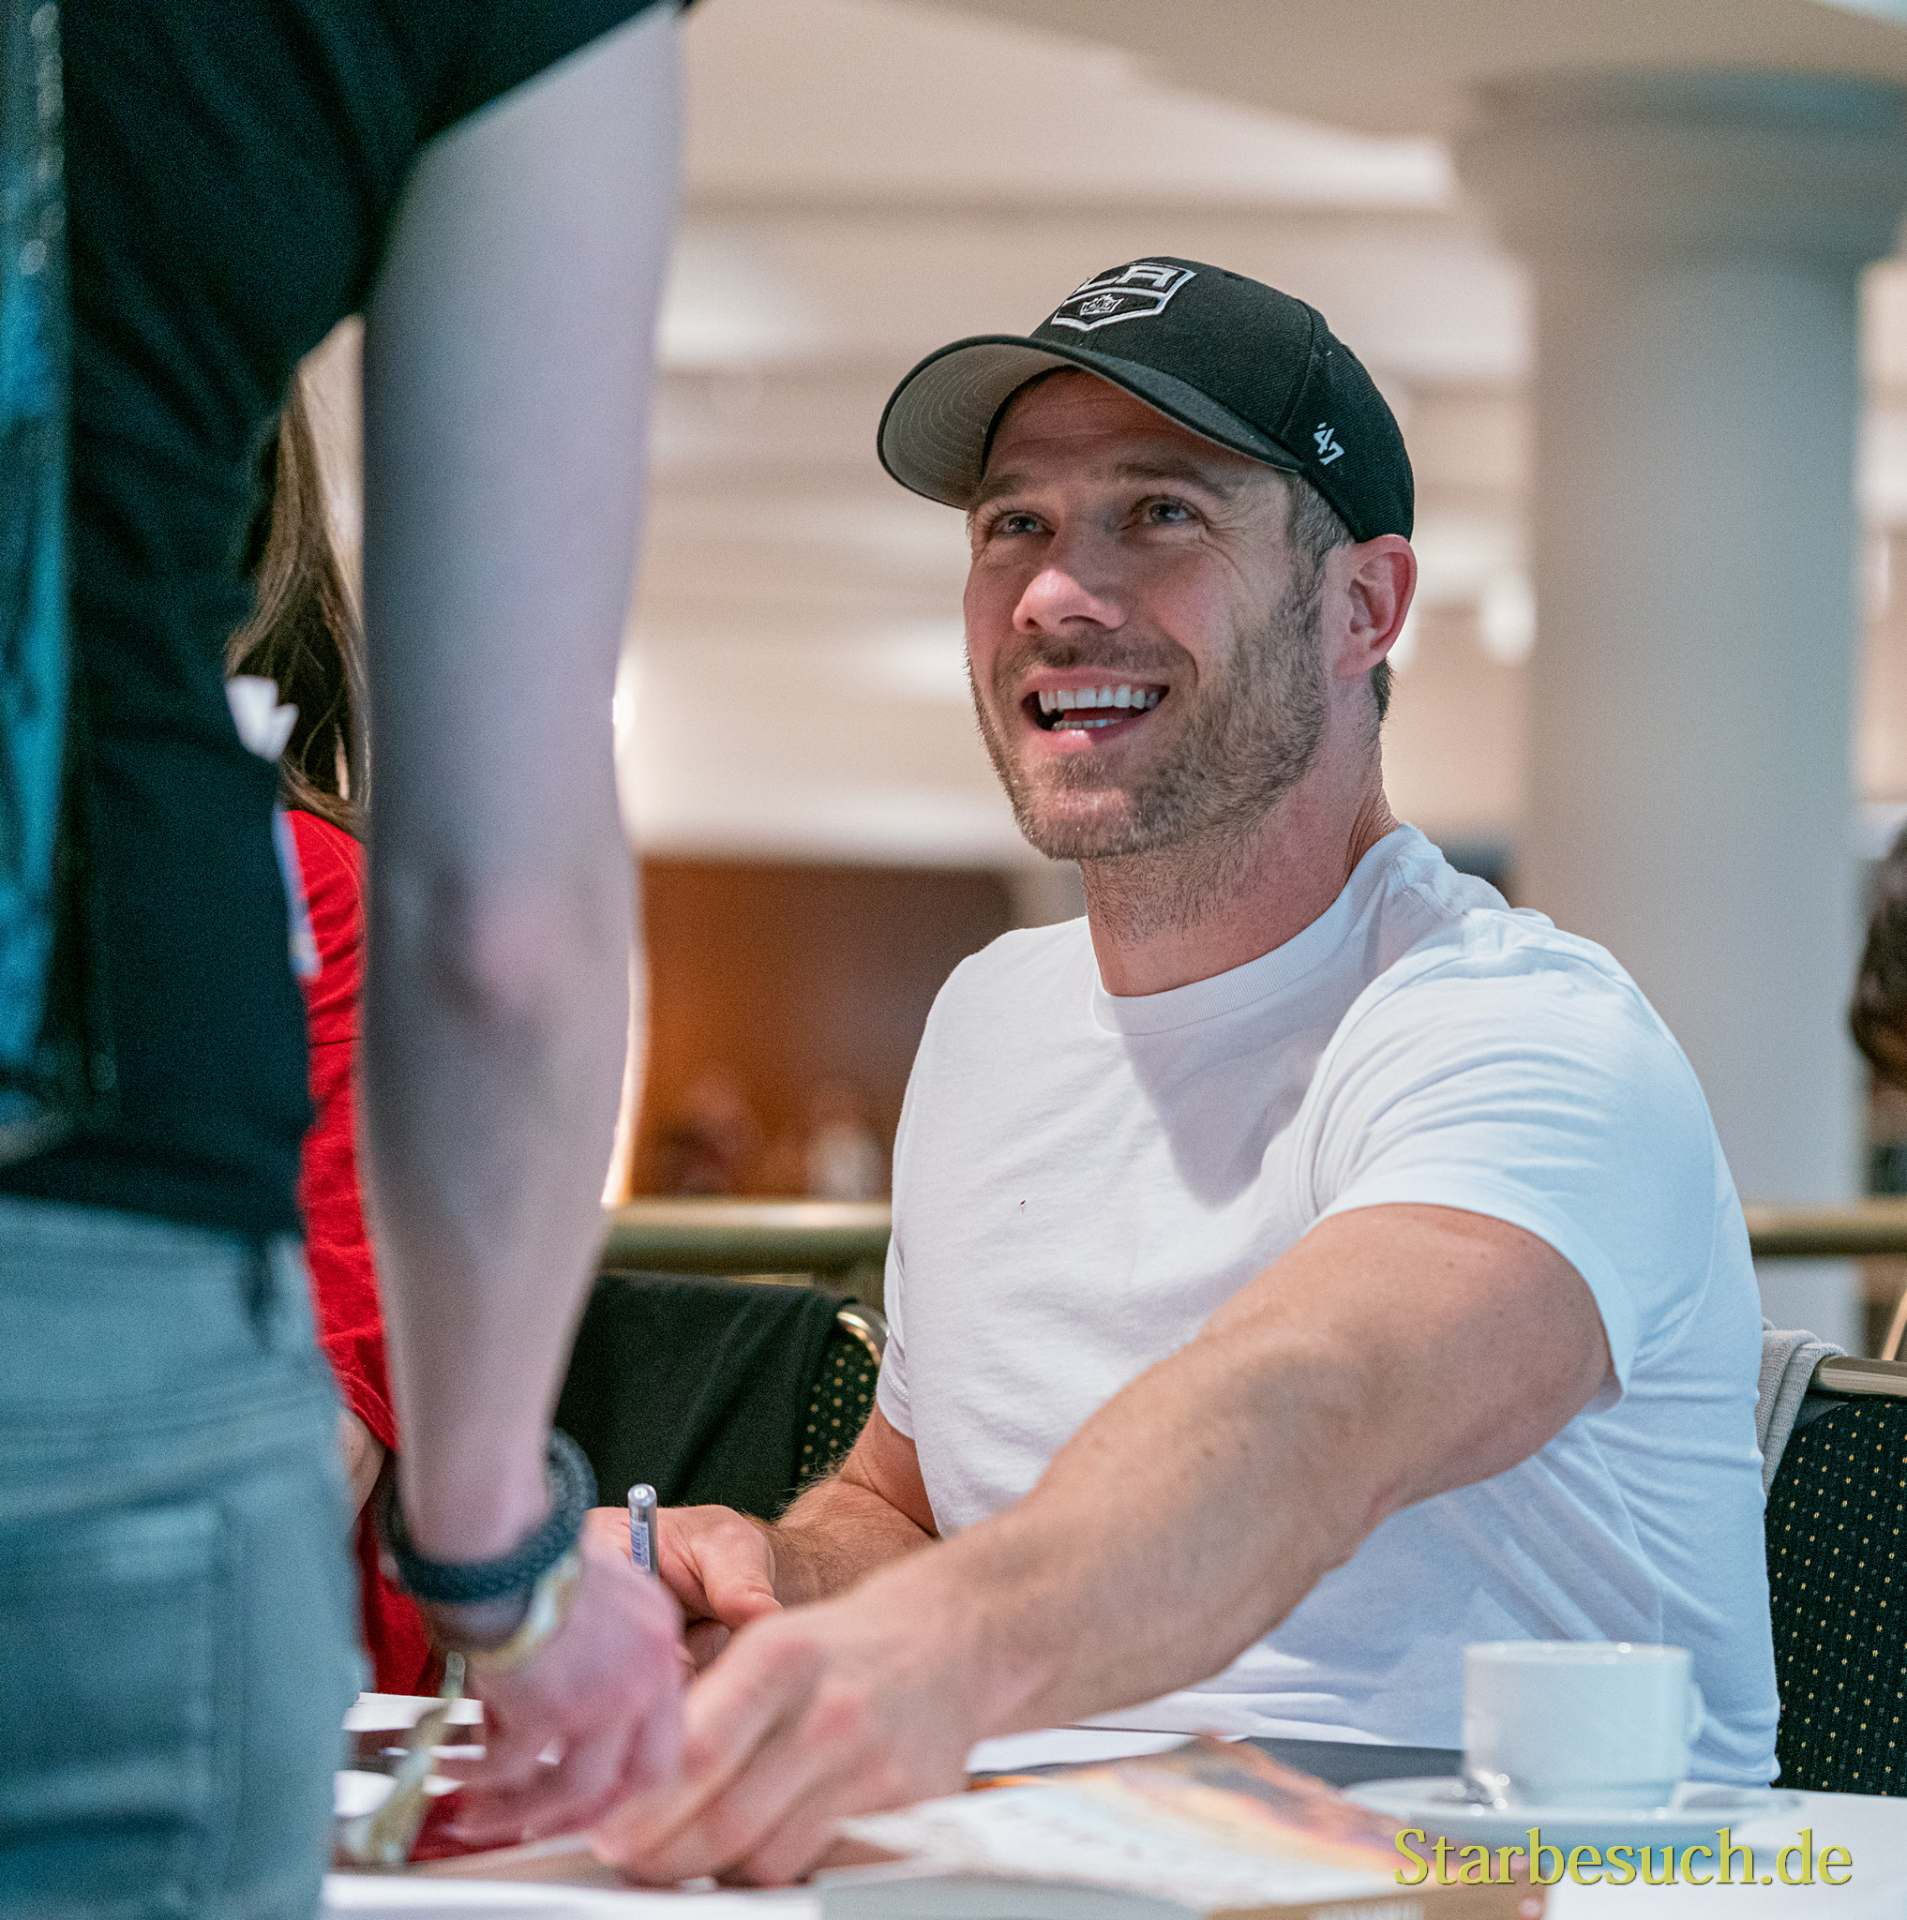 Bonn, Germany - June 8 2019: Luke Macfarlane (*1980, Canadian actor - Killjoys  ) is happy to meet fans at FedCon 28, a four day sci-fi convention. FedCon 28 took place Jun 7-10 2019.